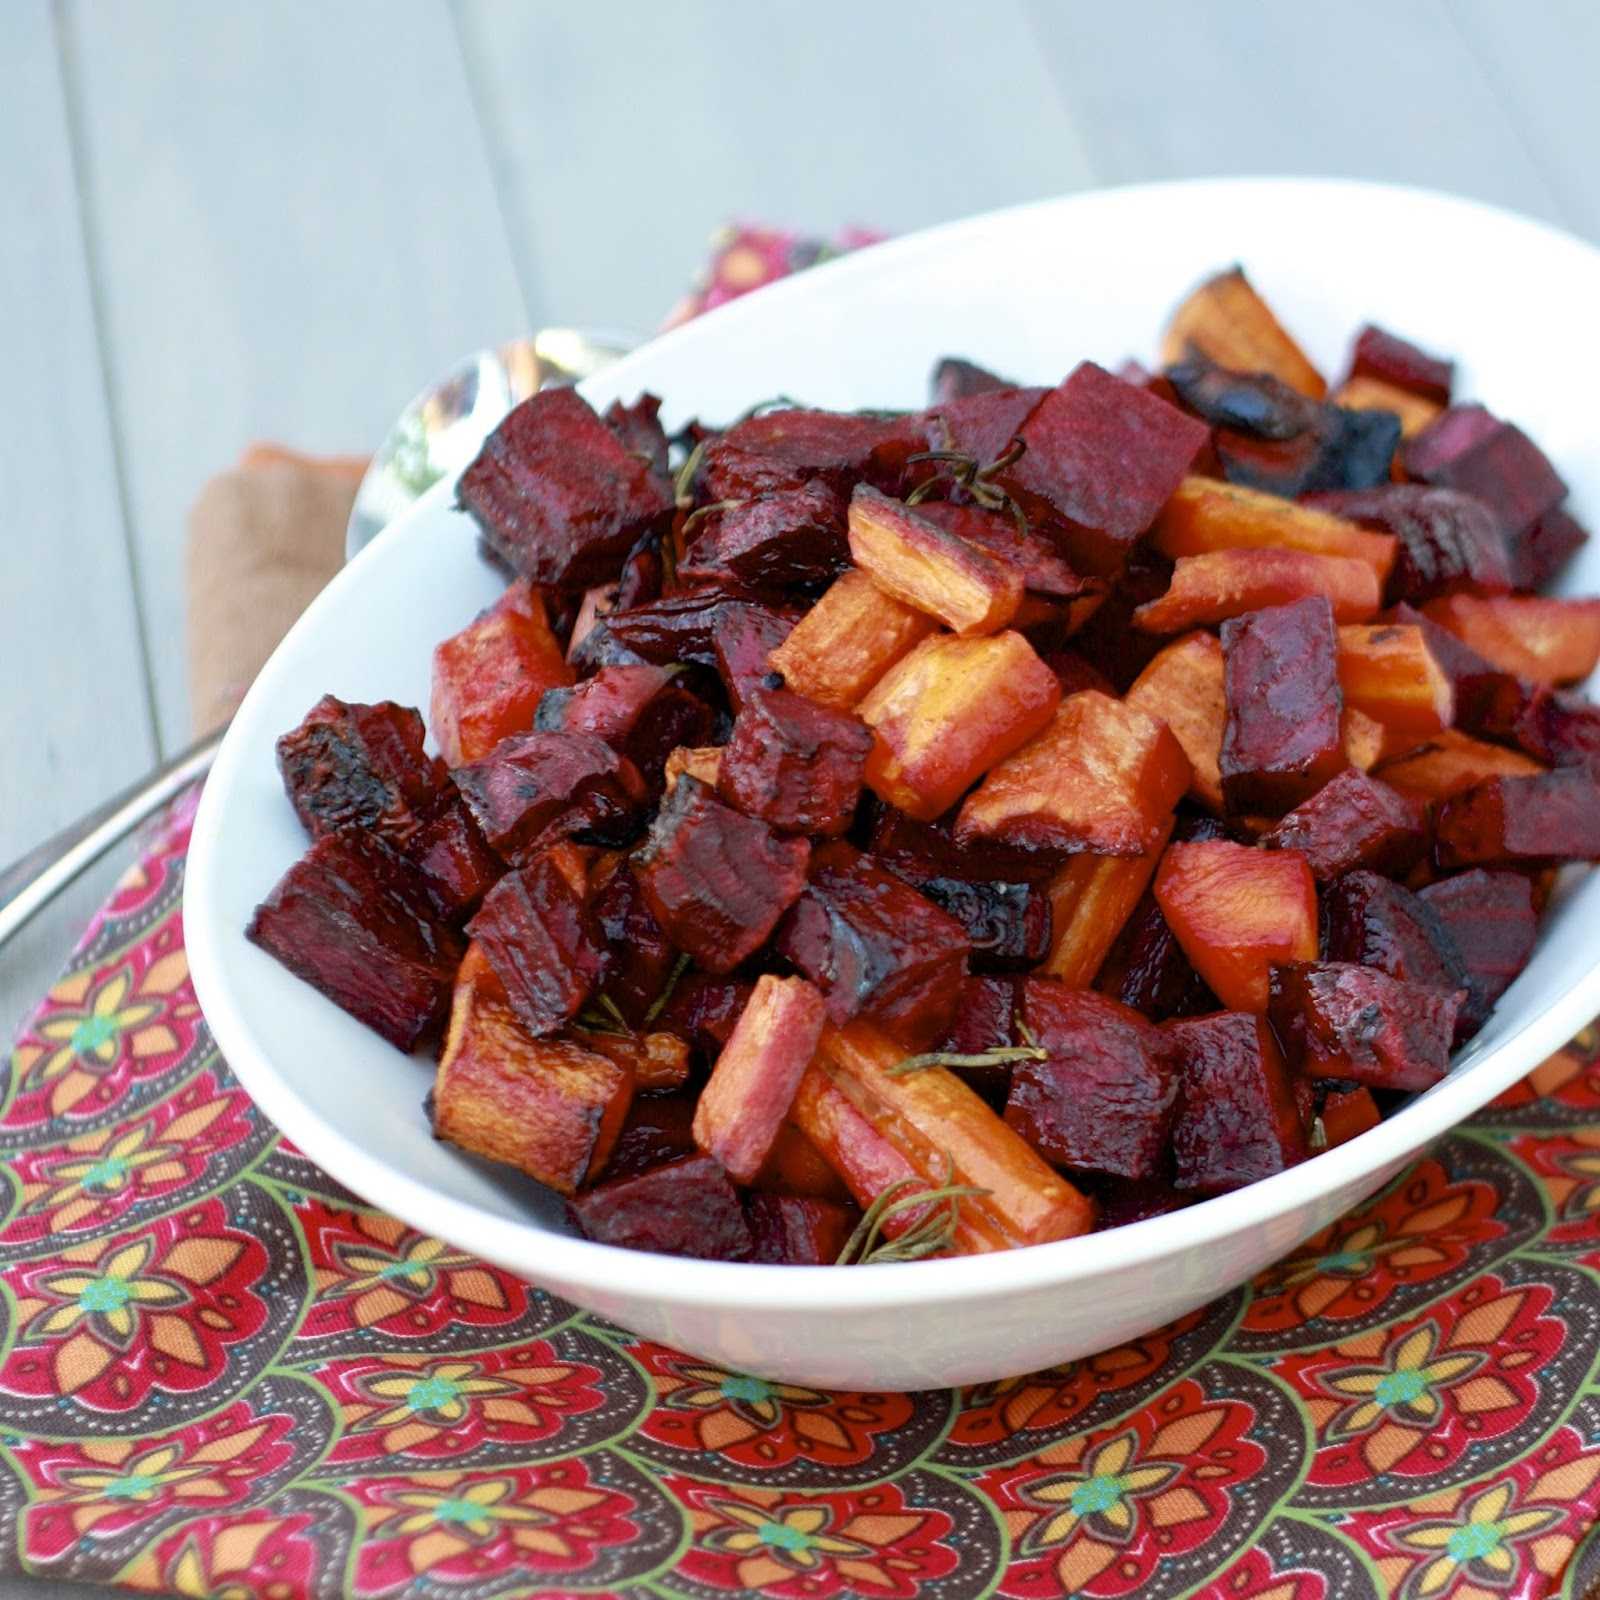 Rosemary Roasted Beets and Carrots | The Sweets Life